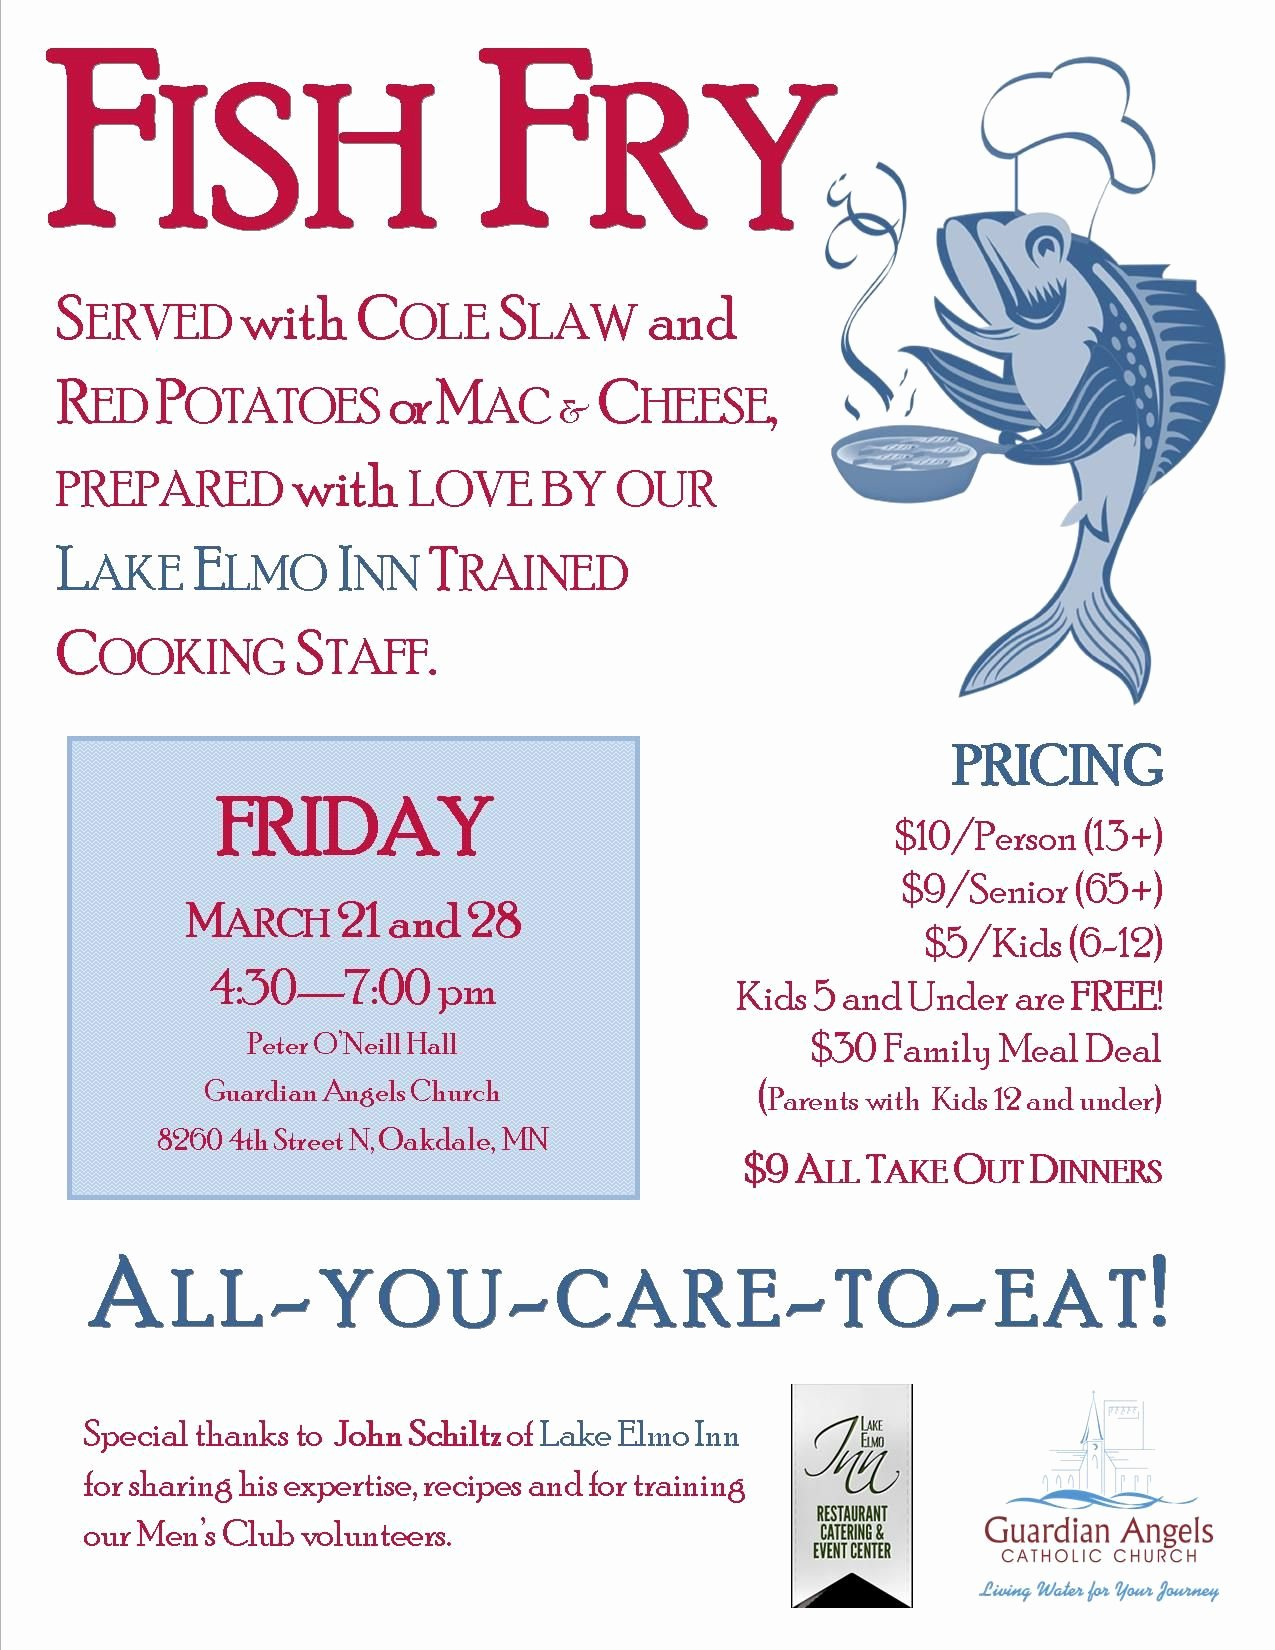 Fish Fry Fundraiser Flyer Awesome Fish Fry event Posters